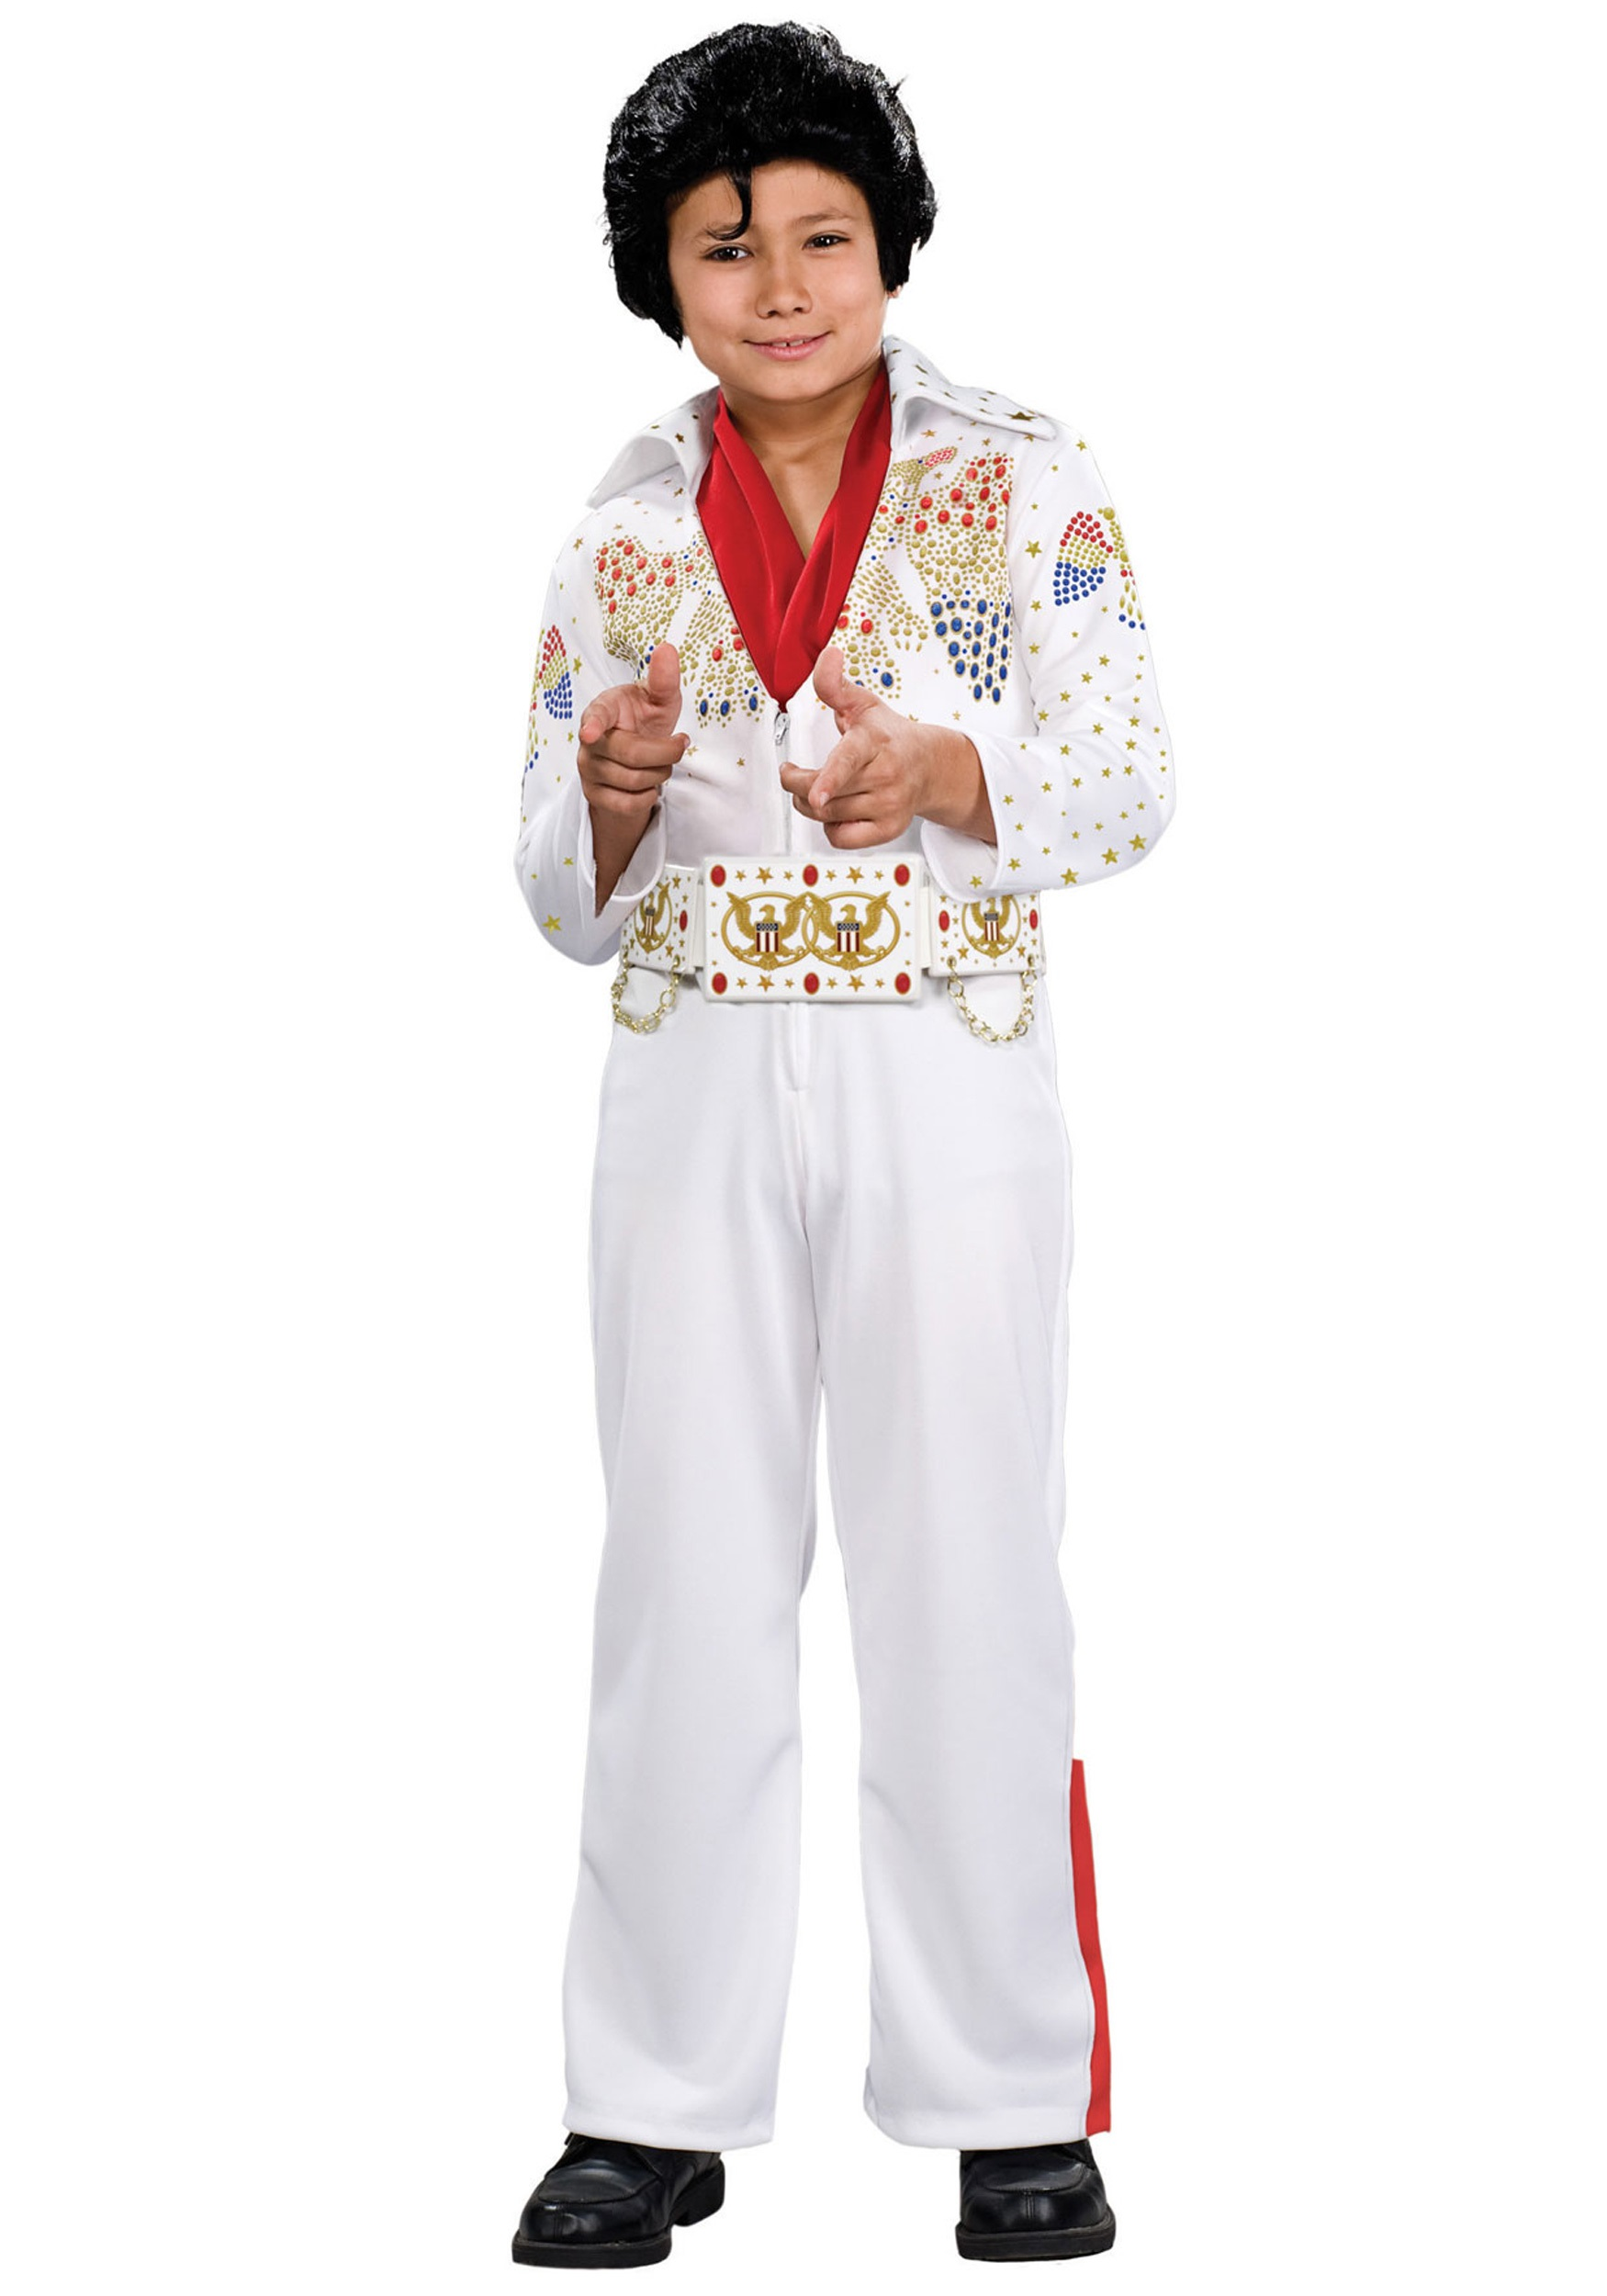 Deluxe Child Elvis Costume For Toddlers  sc 1 st  Fun AU & New episodes of family guy